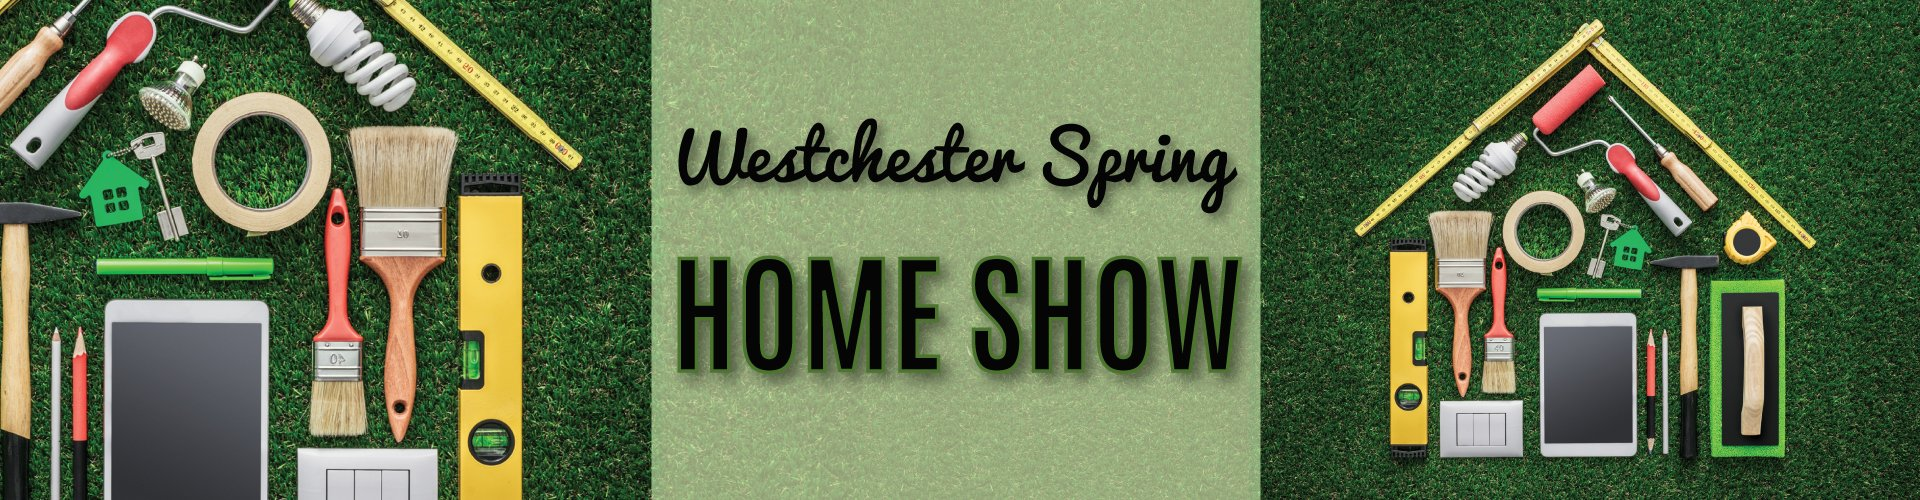 westchester spring home show 2019 jenks productions